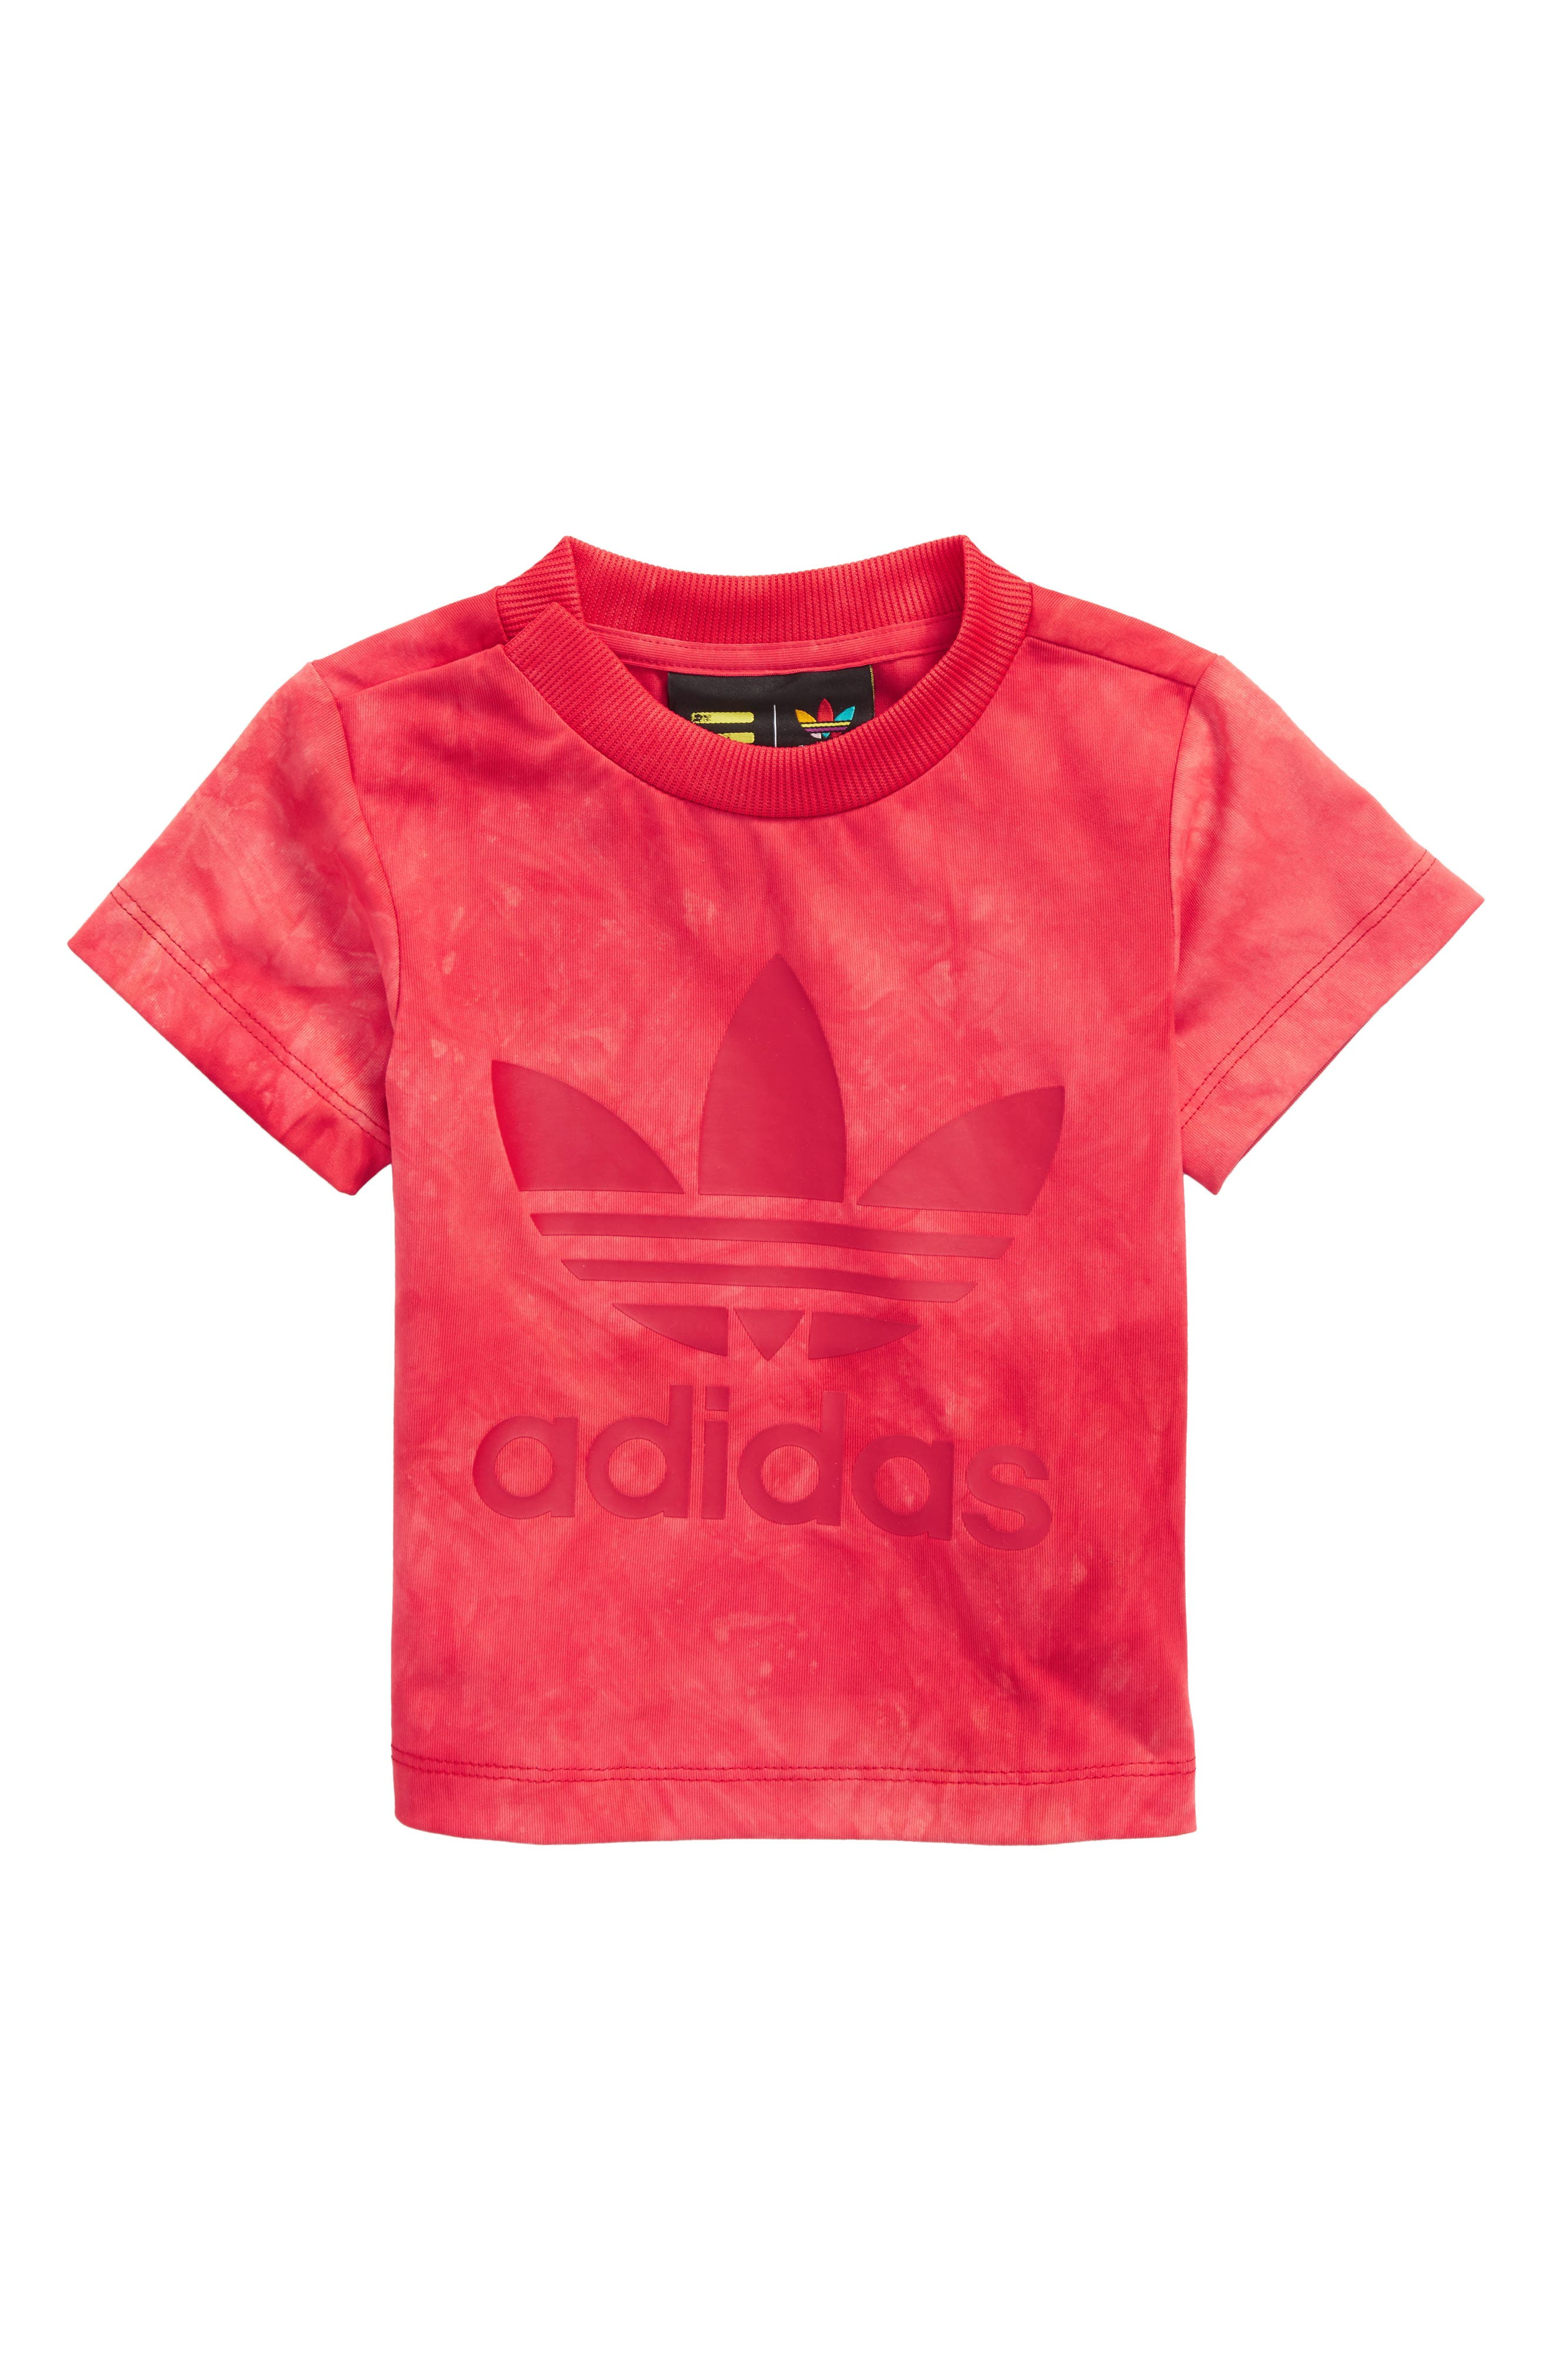 Hu Holi Tee,                         Main,                         color, SCARLET / WHITE